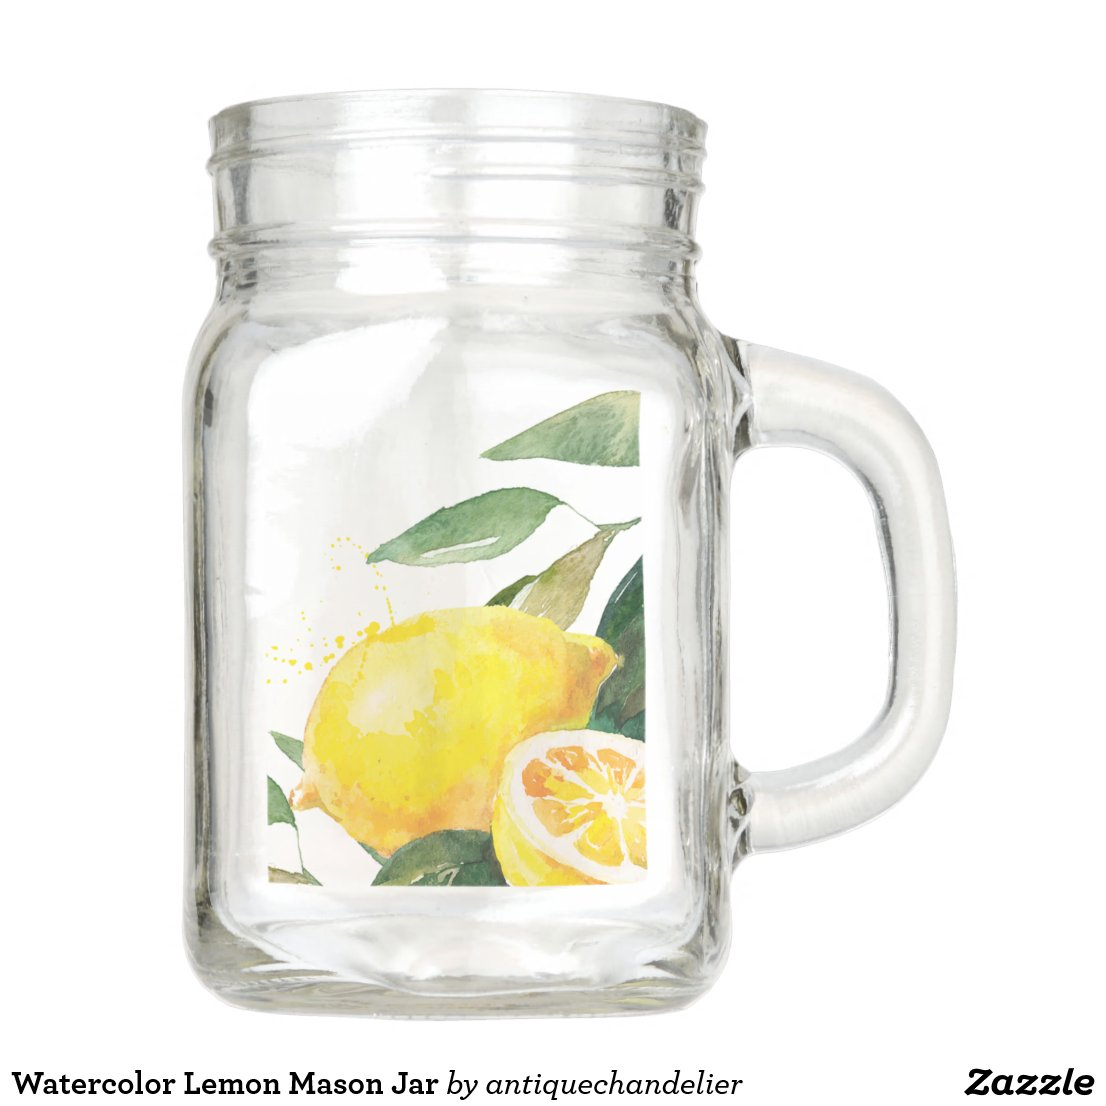 Watercolor Lemon Mason Jar